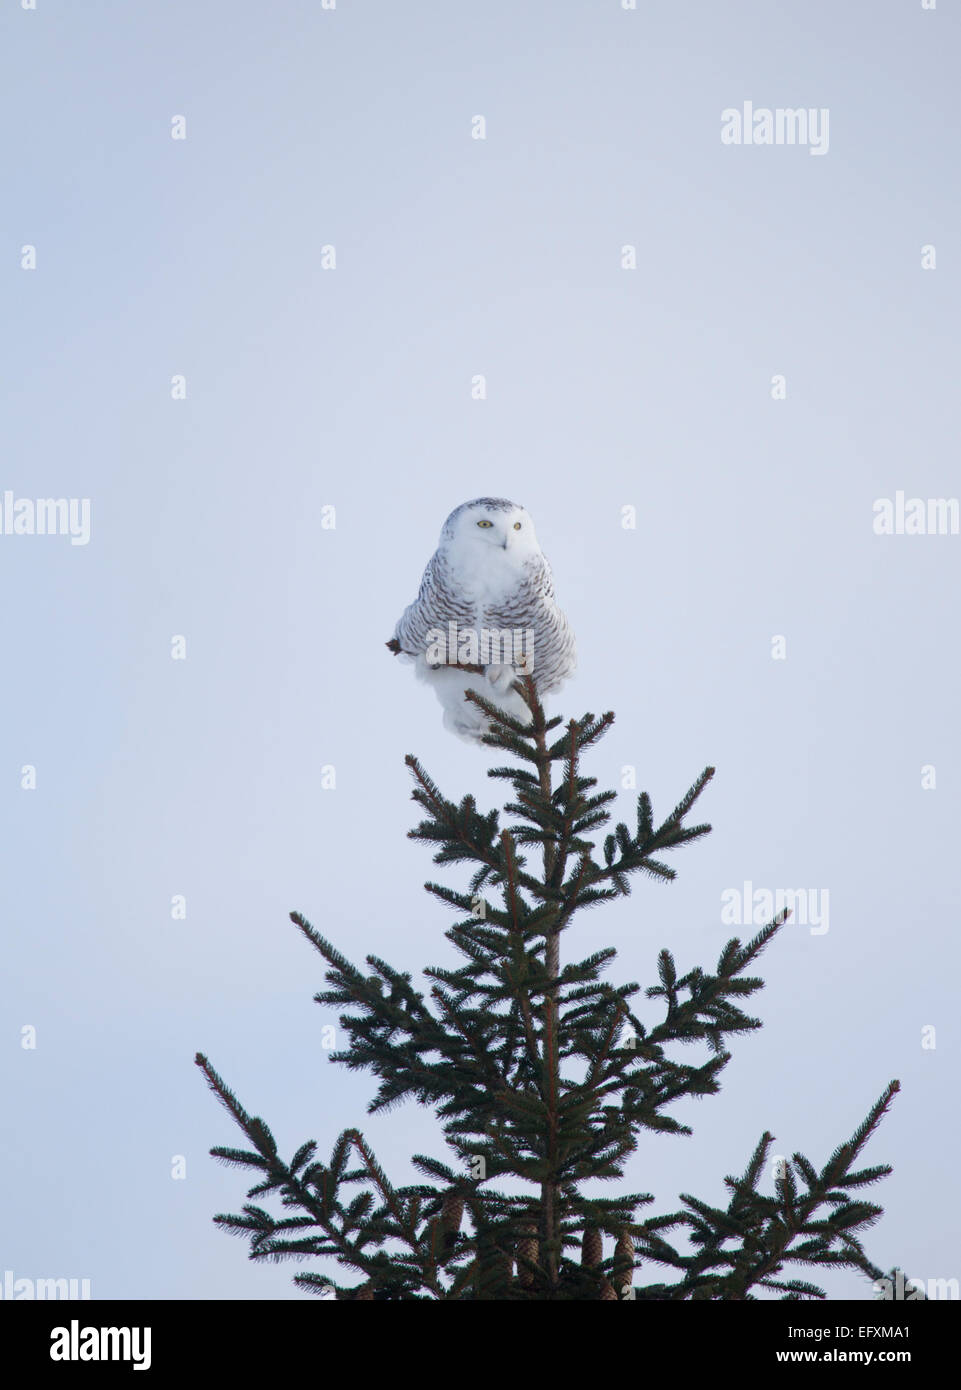 Snowy Owl Perched in Top of a Pine Tree - Stock Image